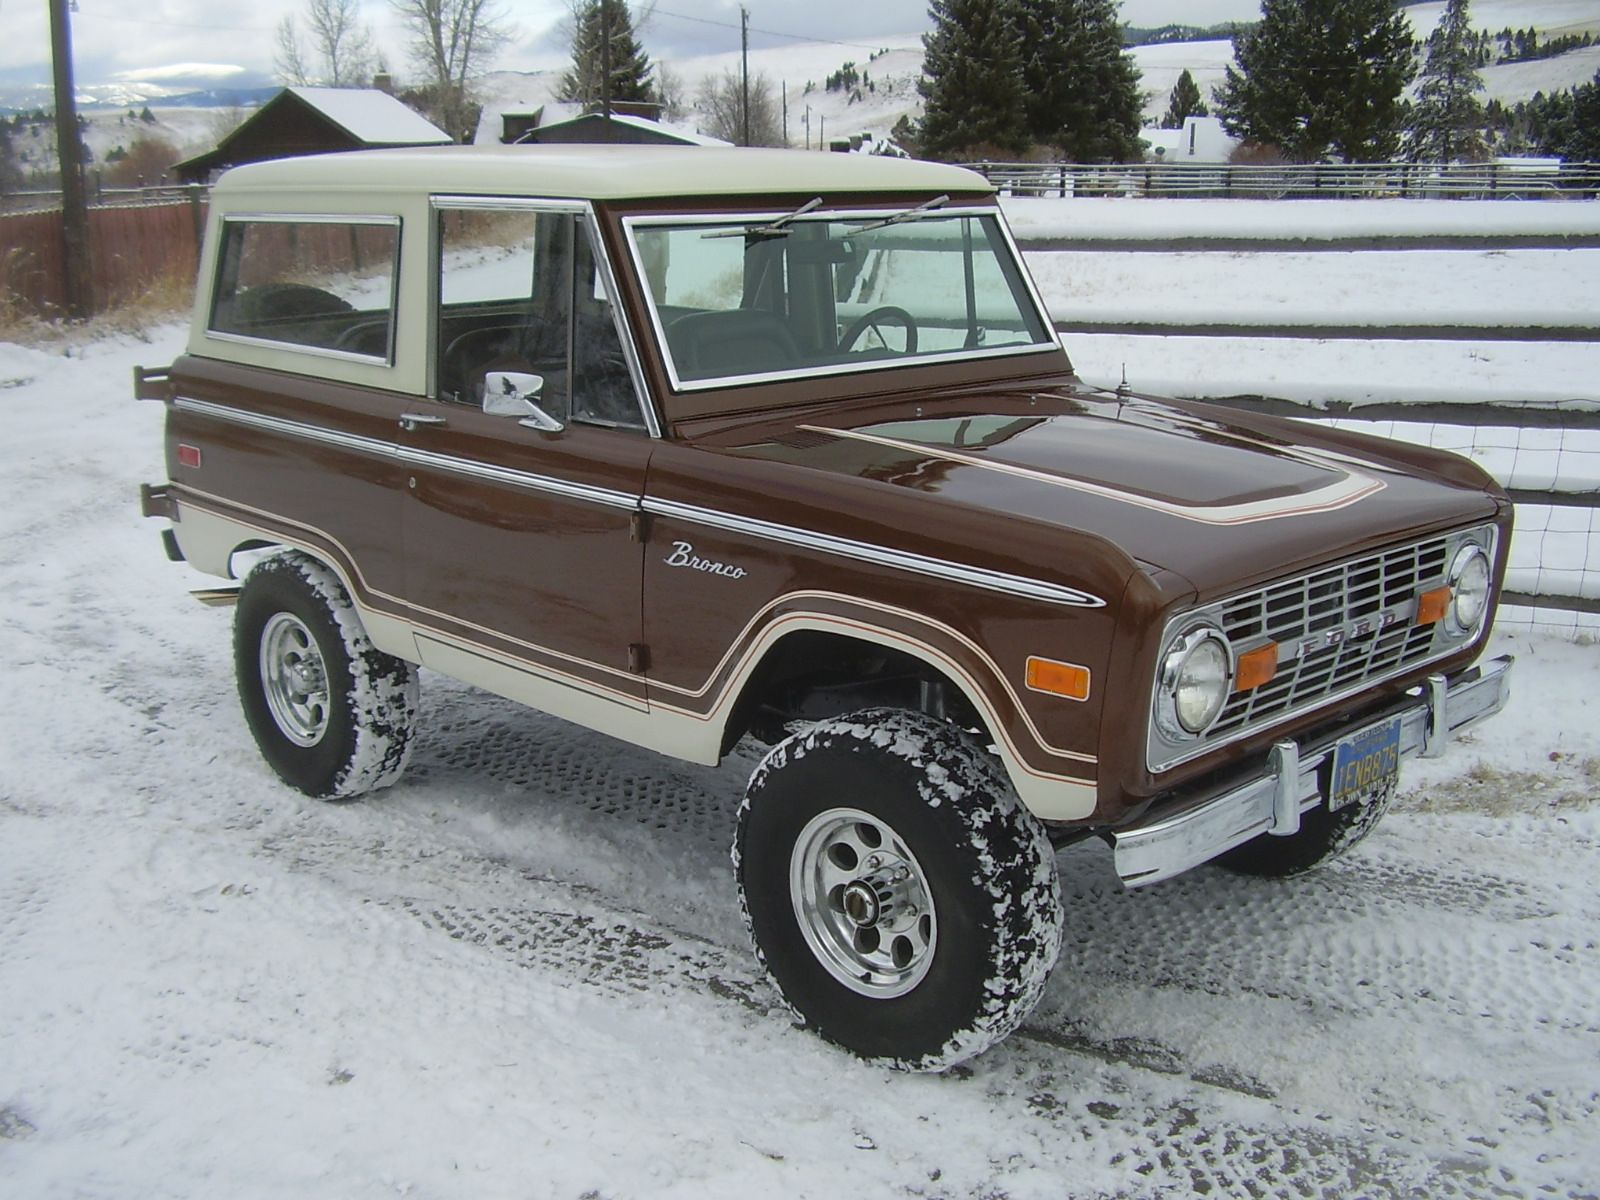 Dark brown classic ford bronco uncut gary robinson we could do some details